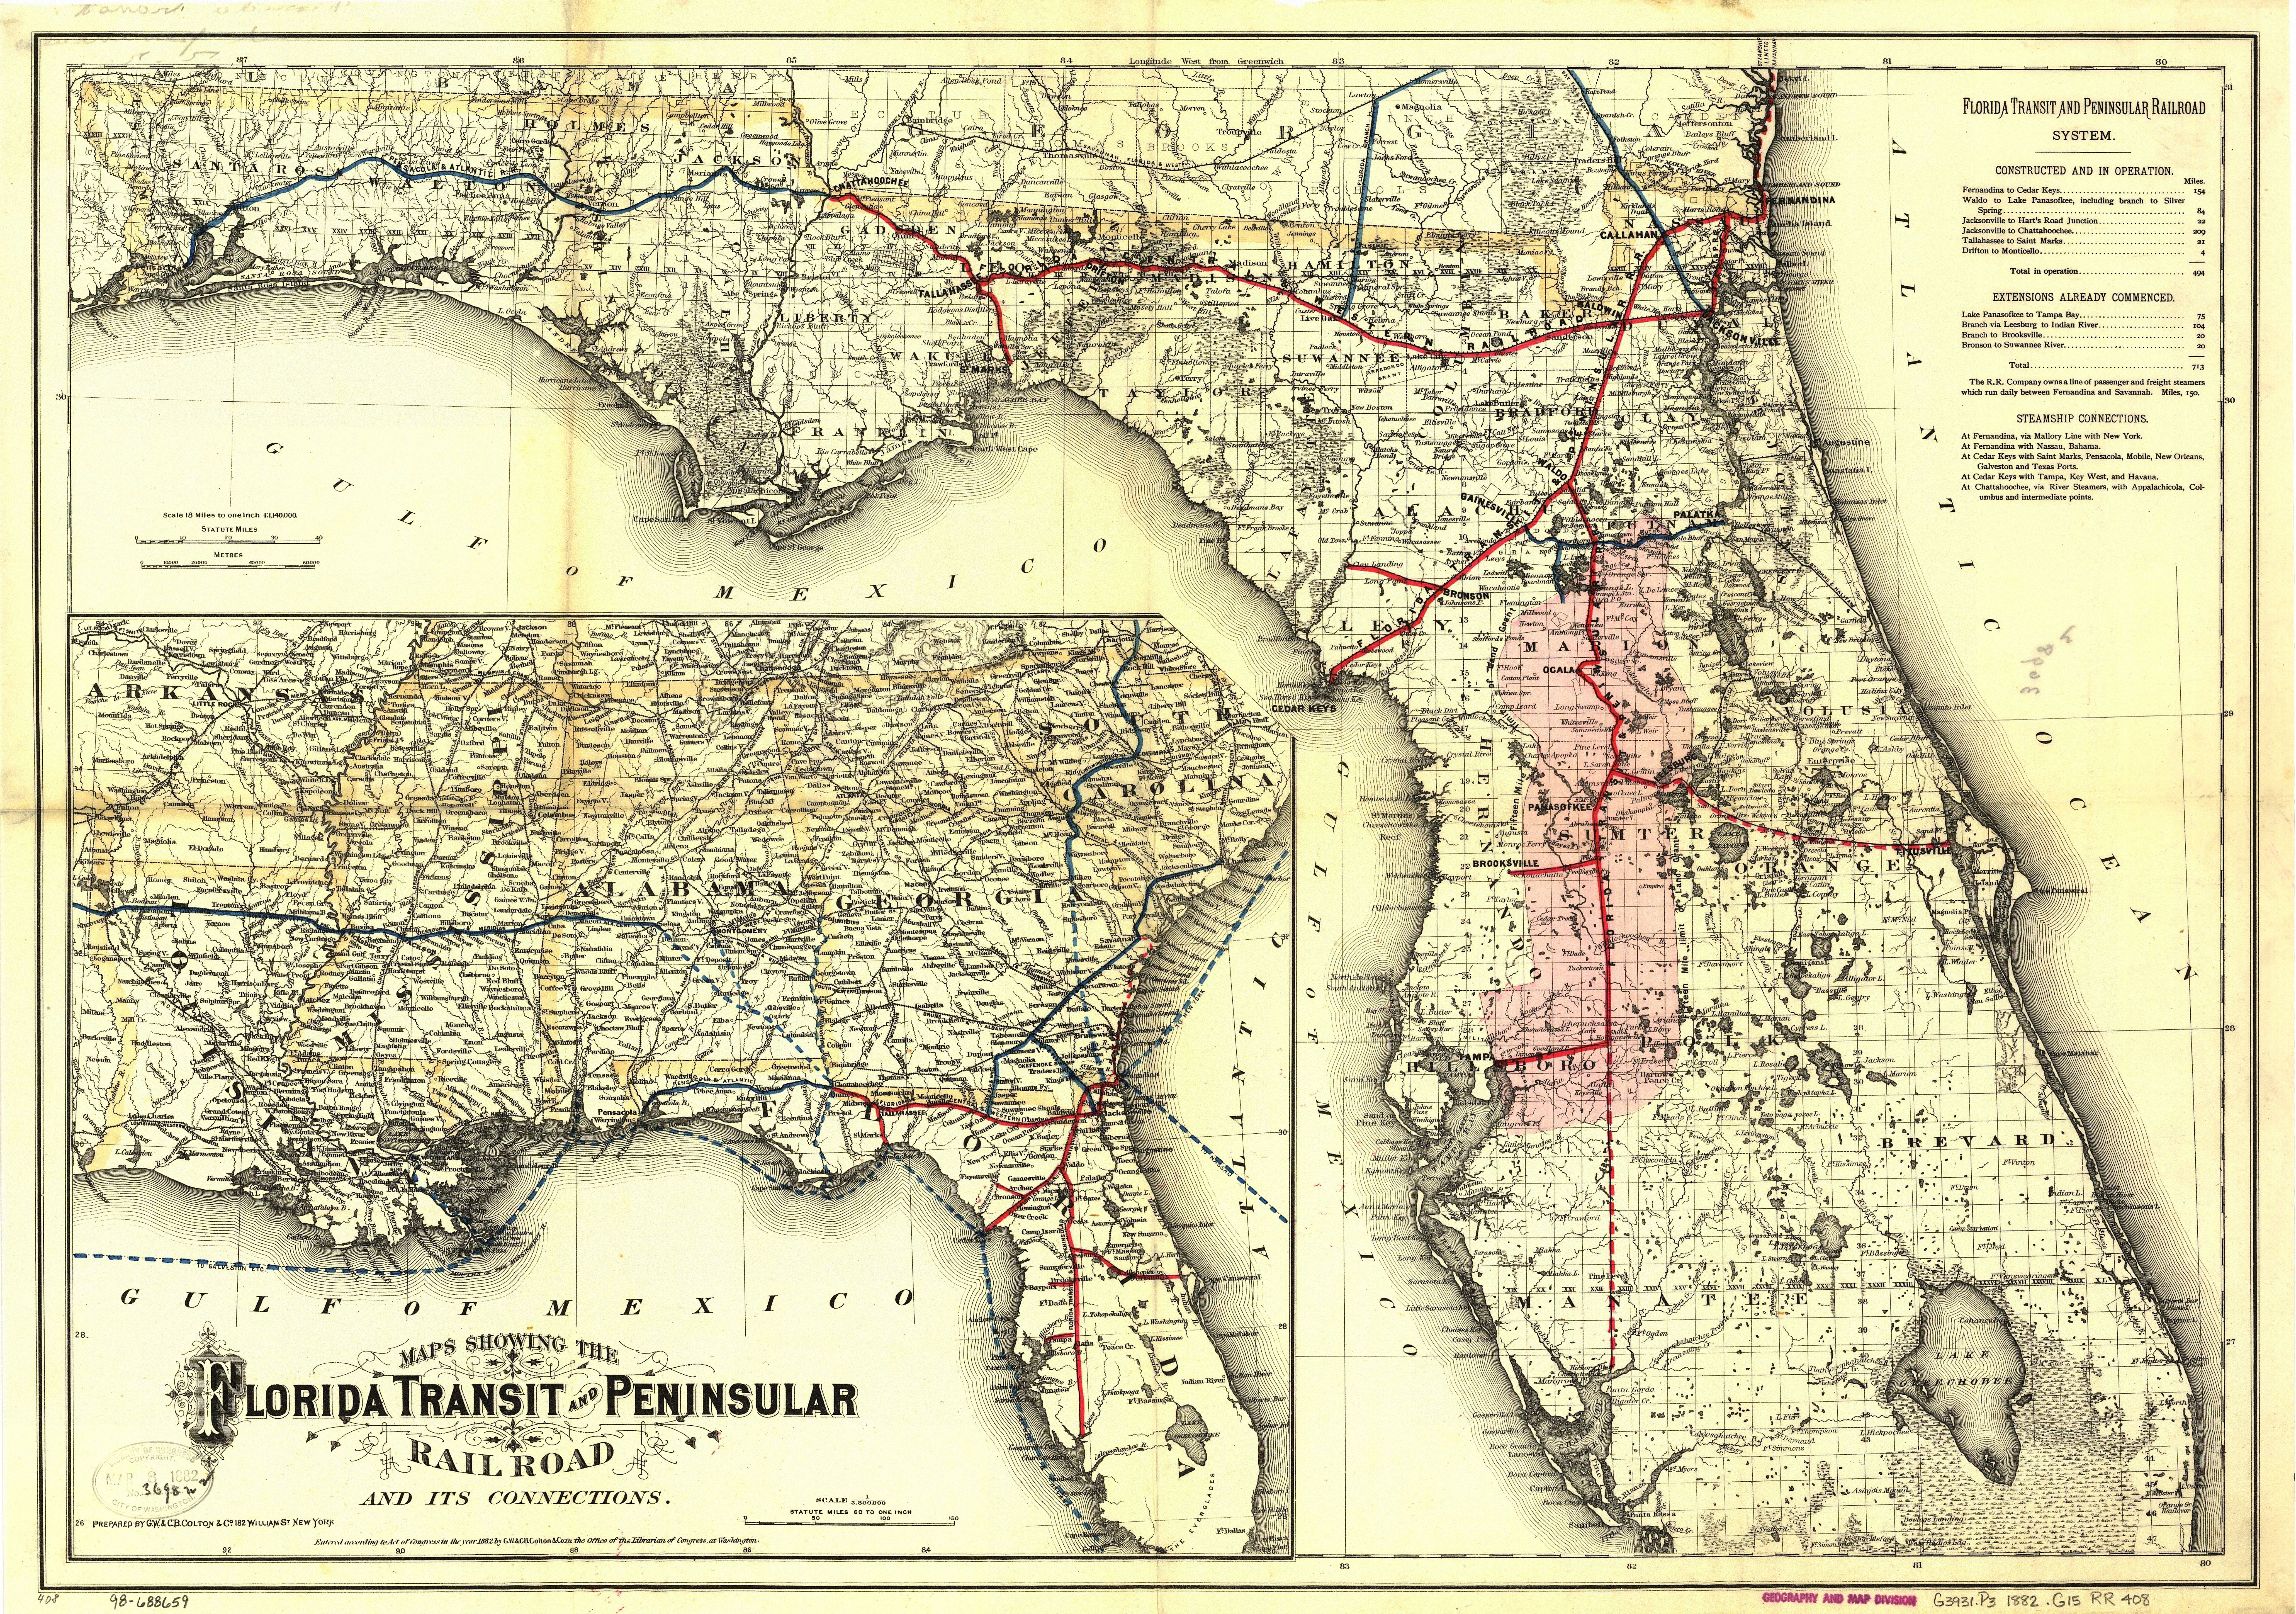 Florida Central Map.Florida Central And Peninsular Railroad Wikipedia